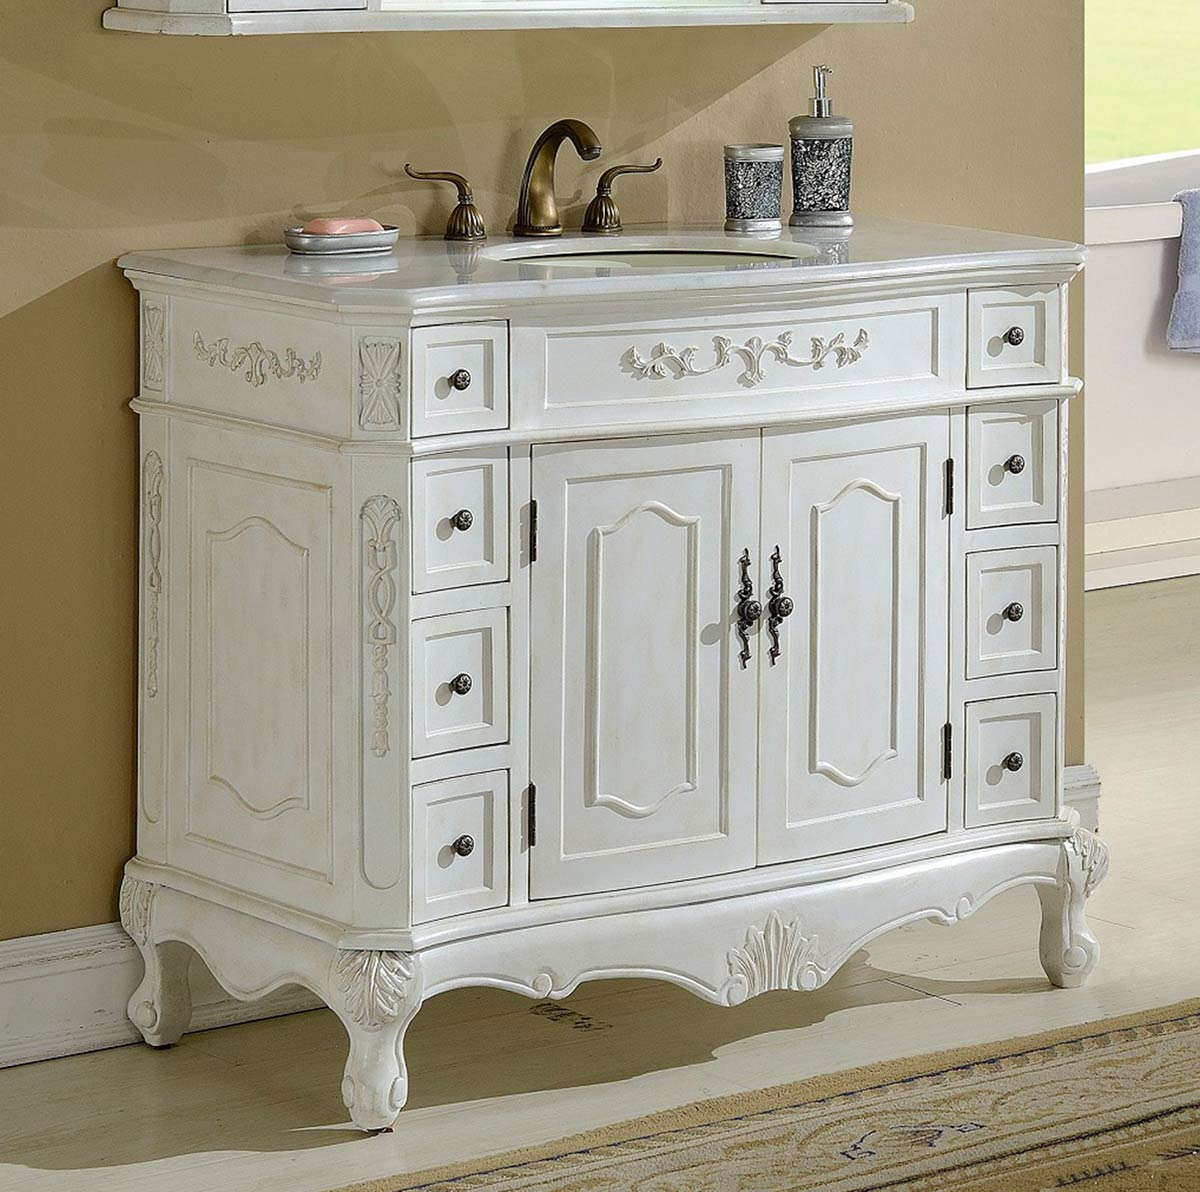 Chelsea Home Cambridge 42-inch Vanity - Antique White